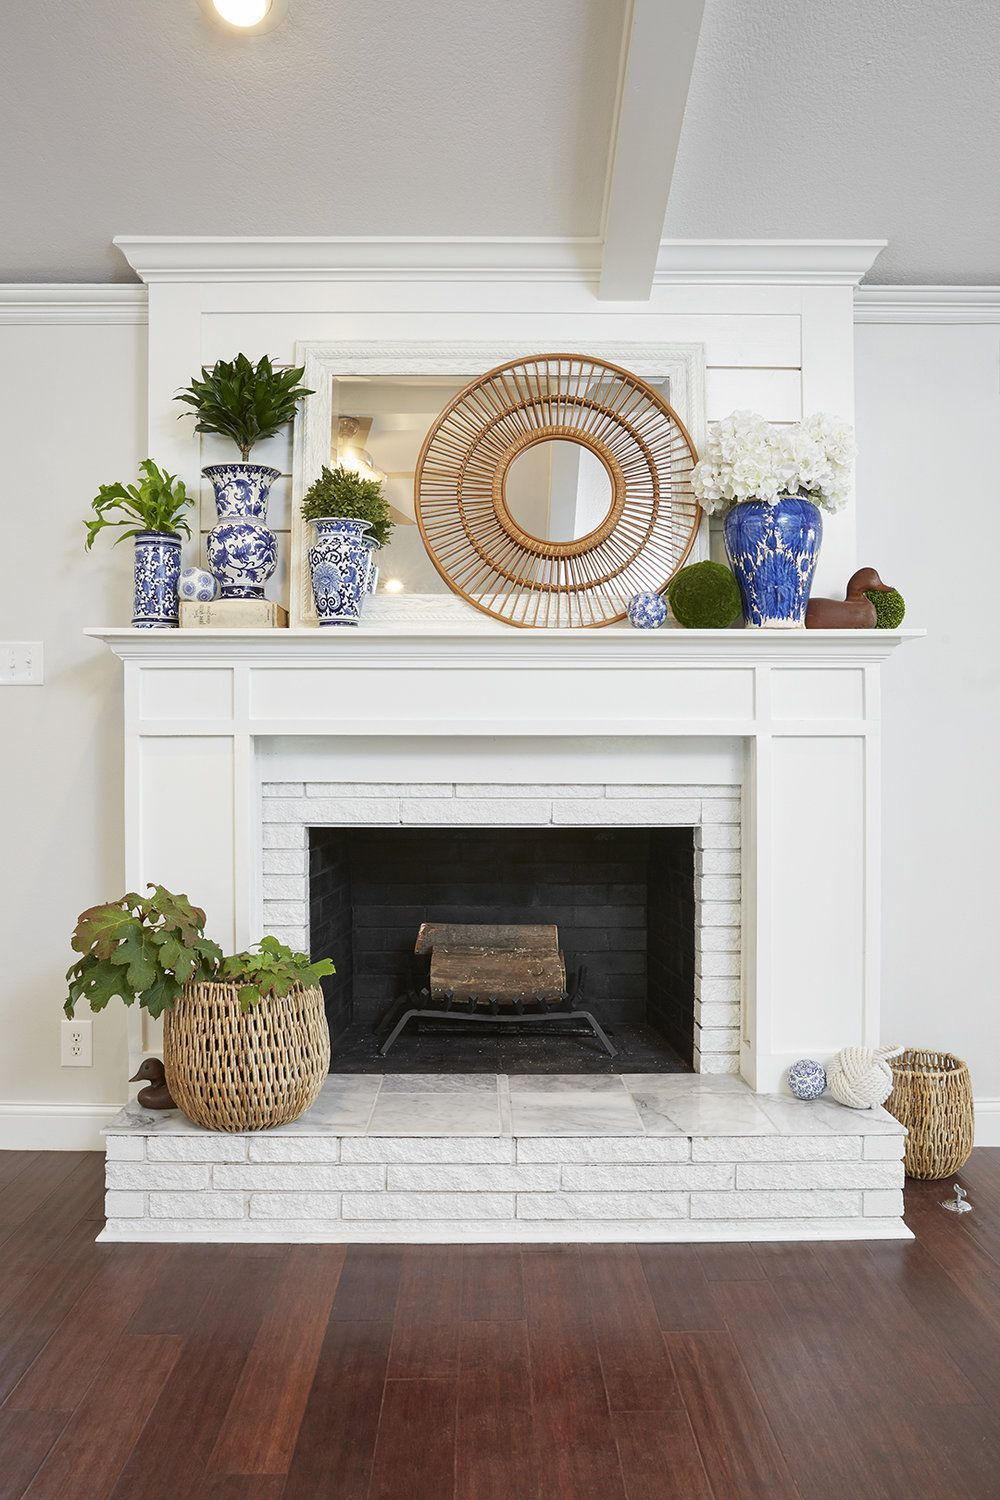 Nowadays Fireplace Ideas Come In A Vent Free Gas Or Propane And Electric Modern Fireplaces Are Built No More Just With Stone Brick